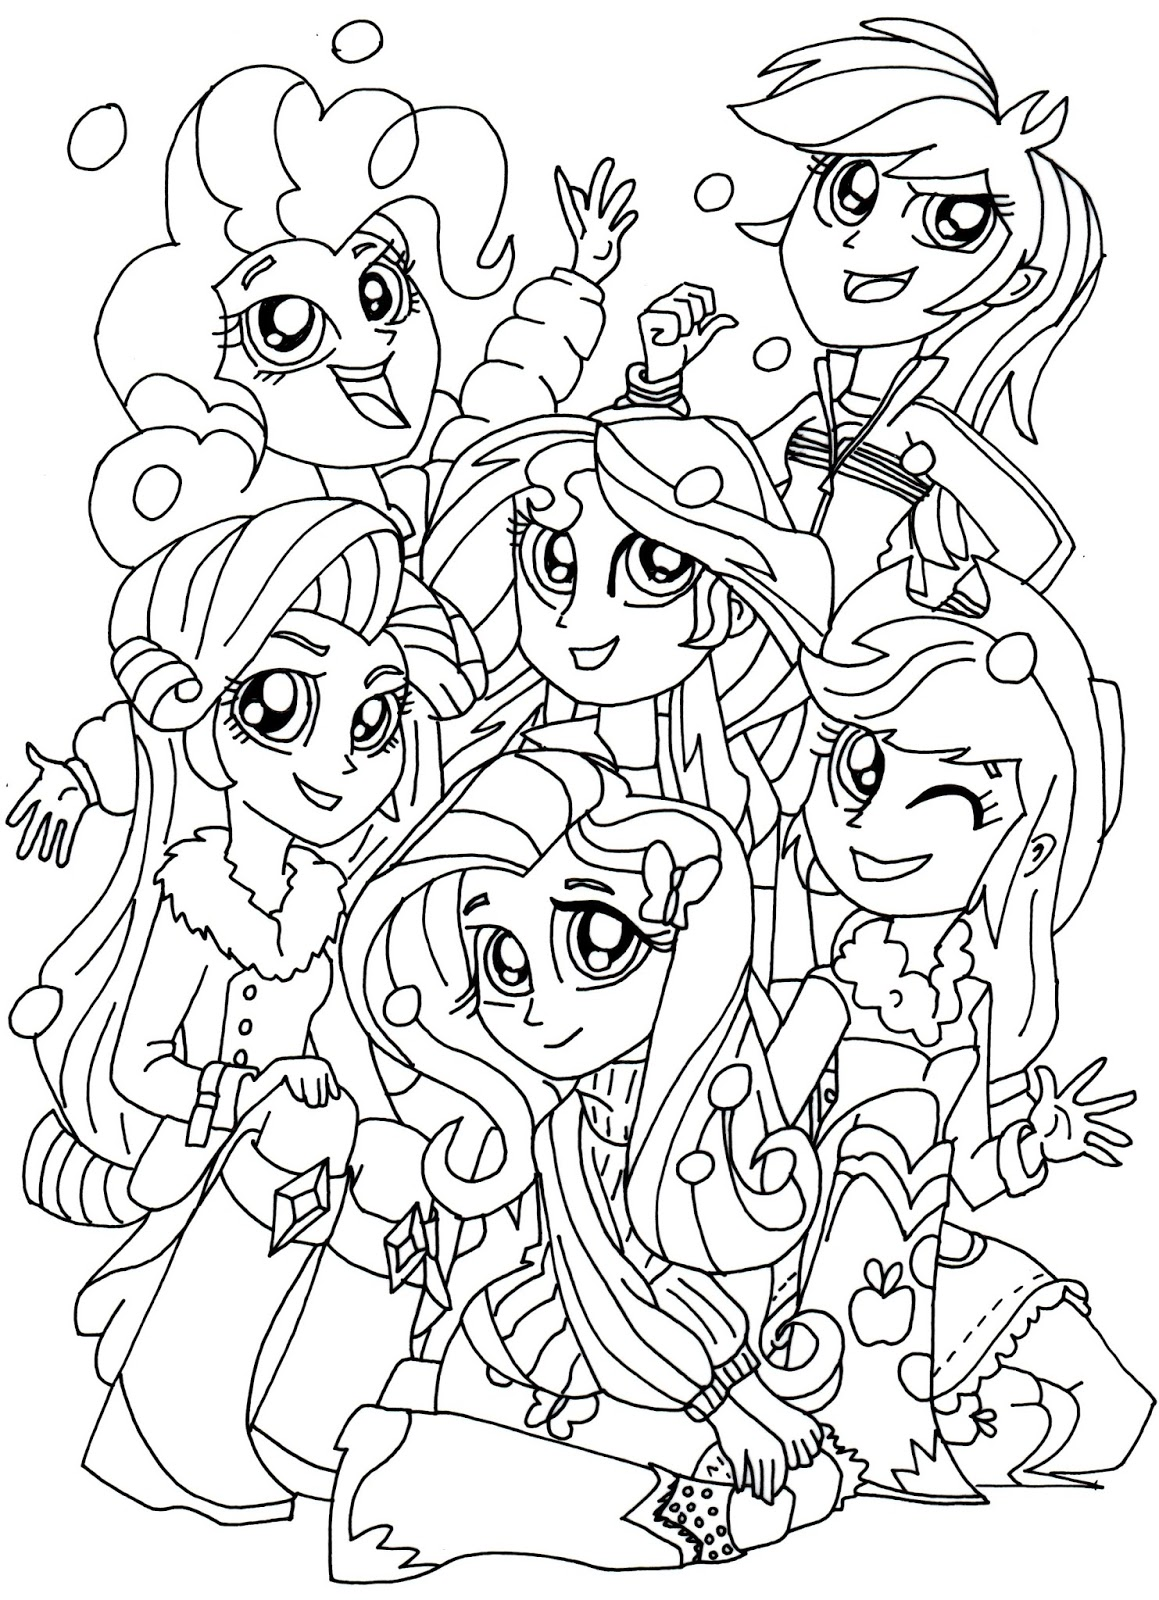 Equestria girls Coloring Pages | How to Draw Twilight Sparkle ... | 1600x1159